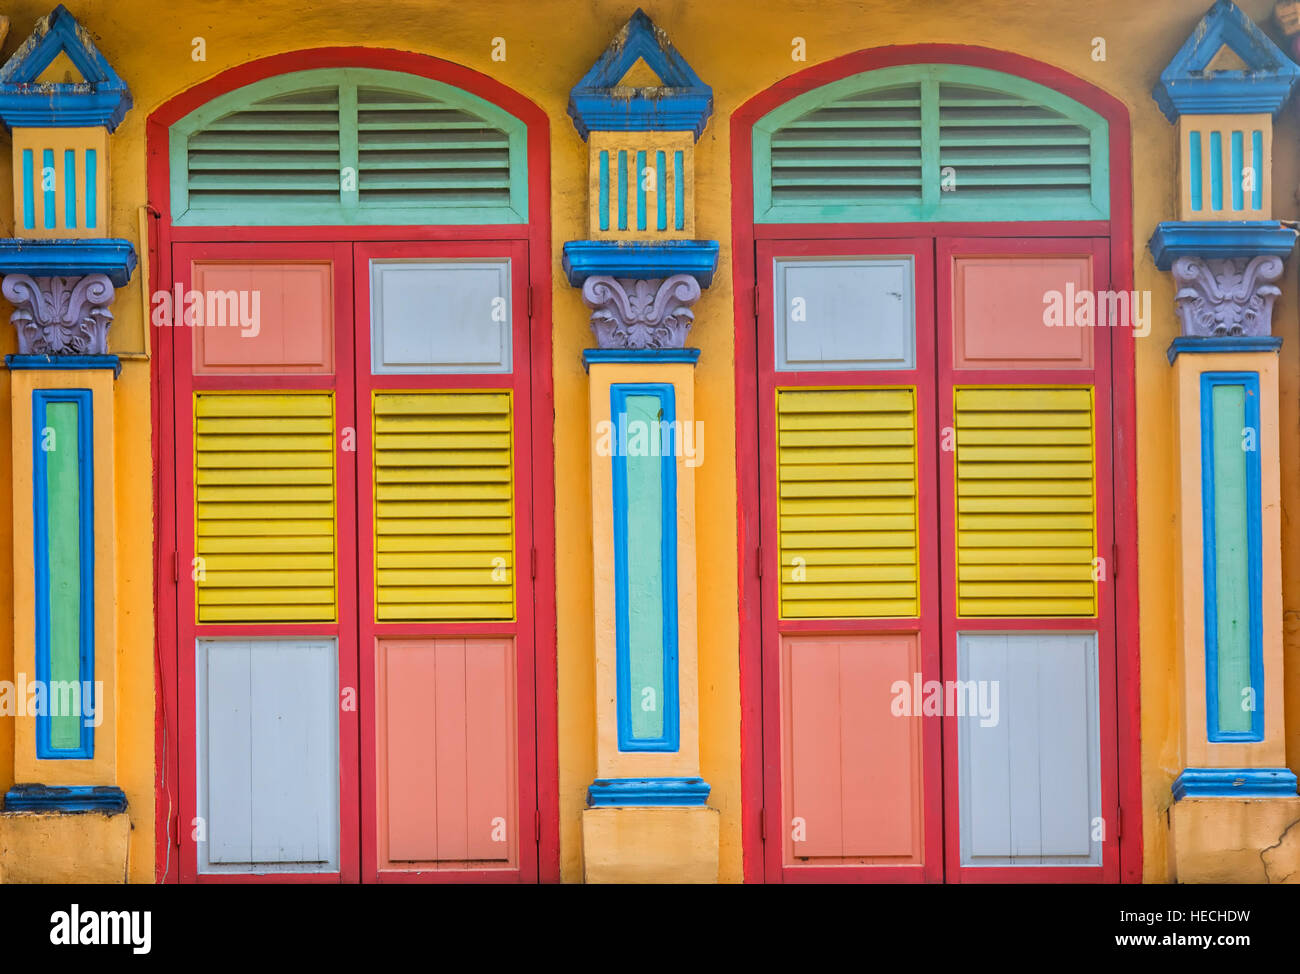 The historic villa of Tan Teng Niah, a pioneering Chinese businessman in Little India, Singapore - Stock Image